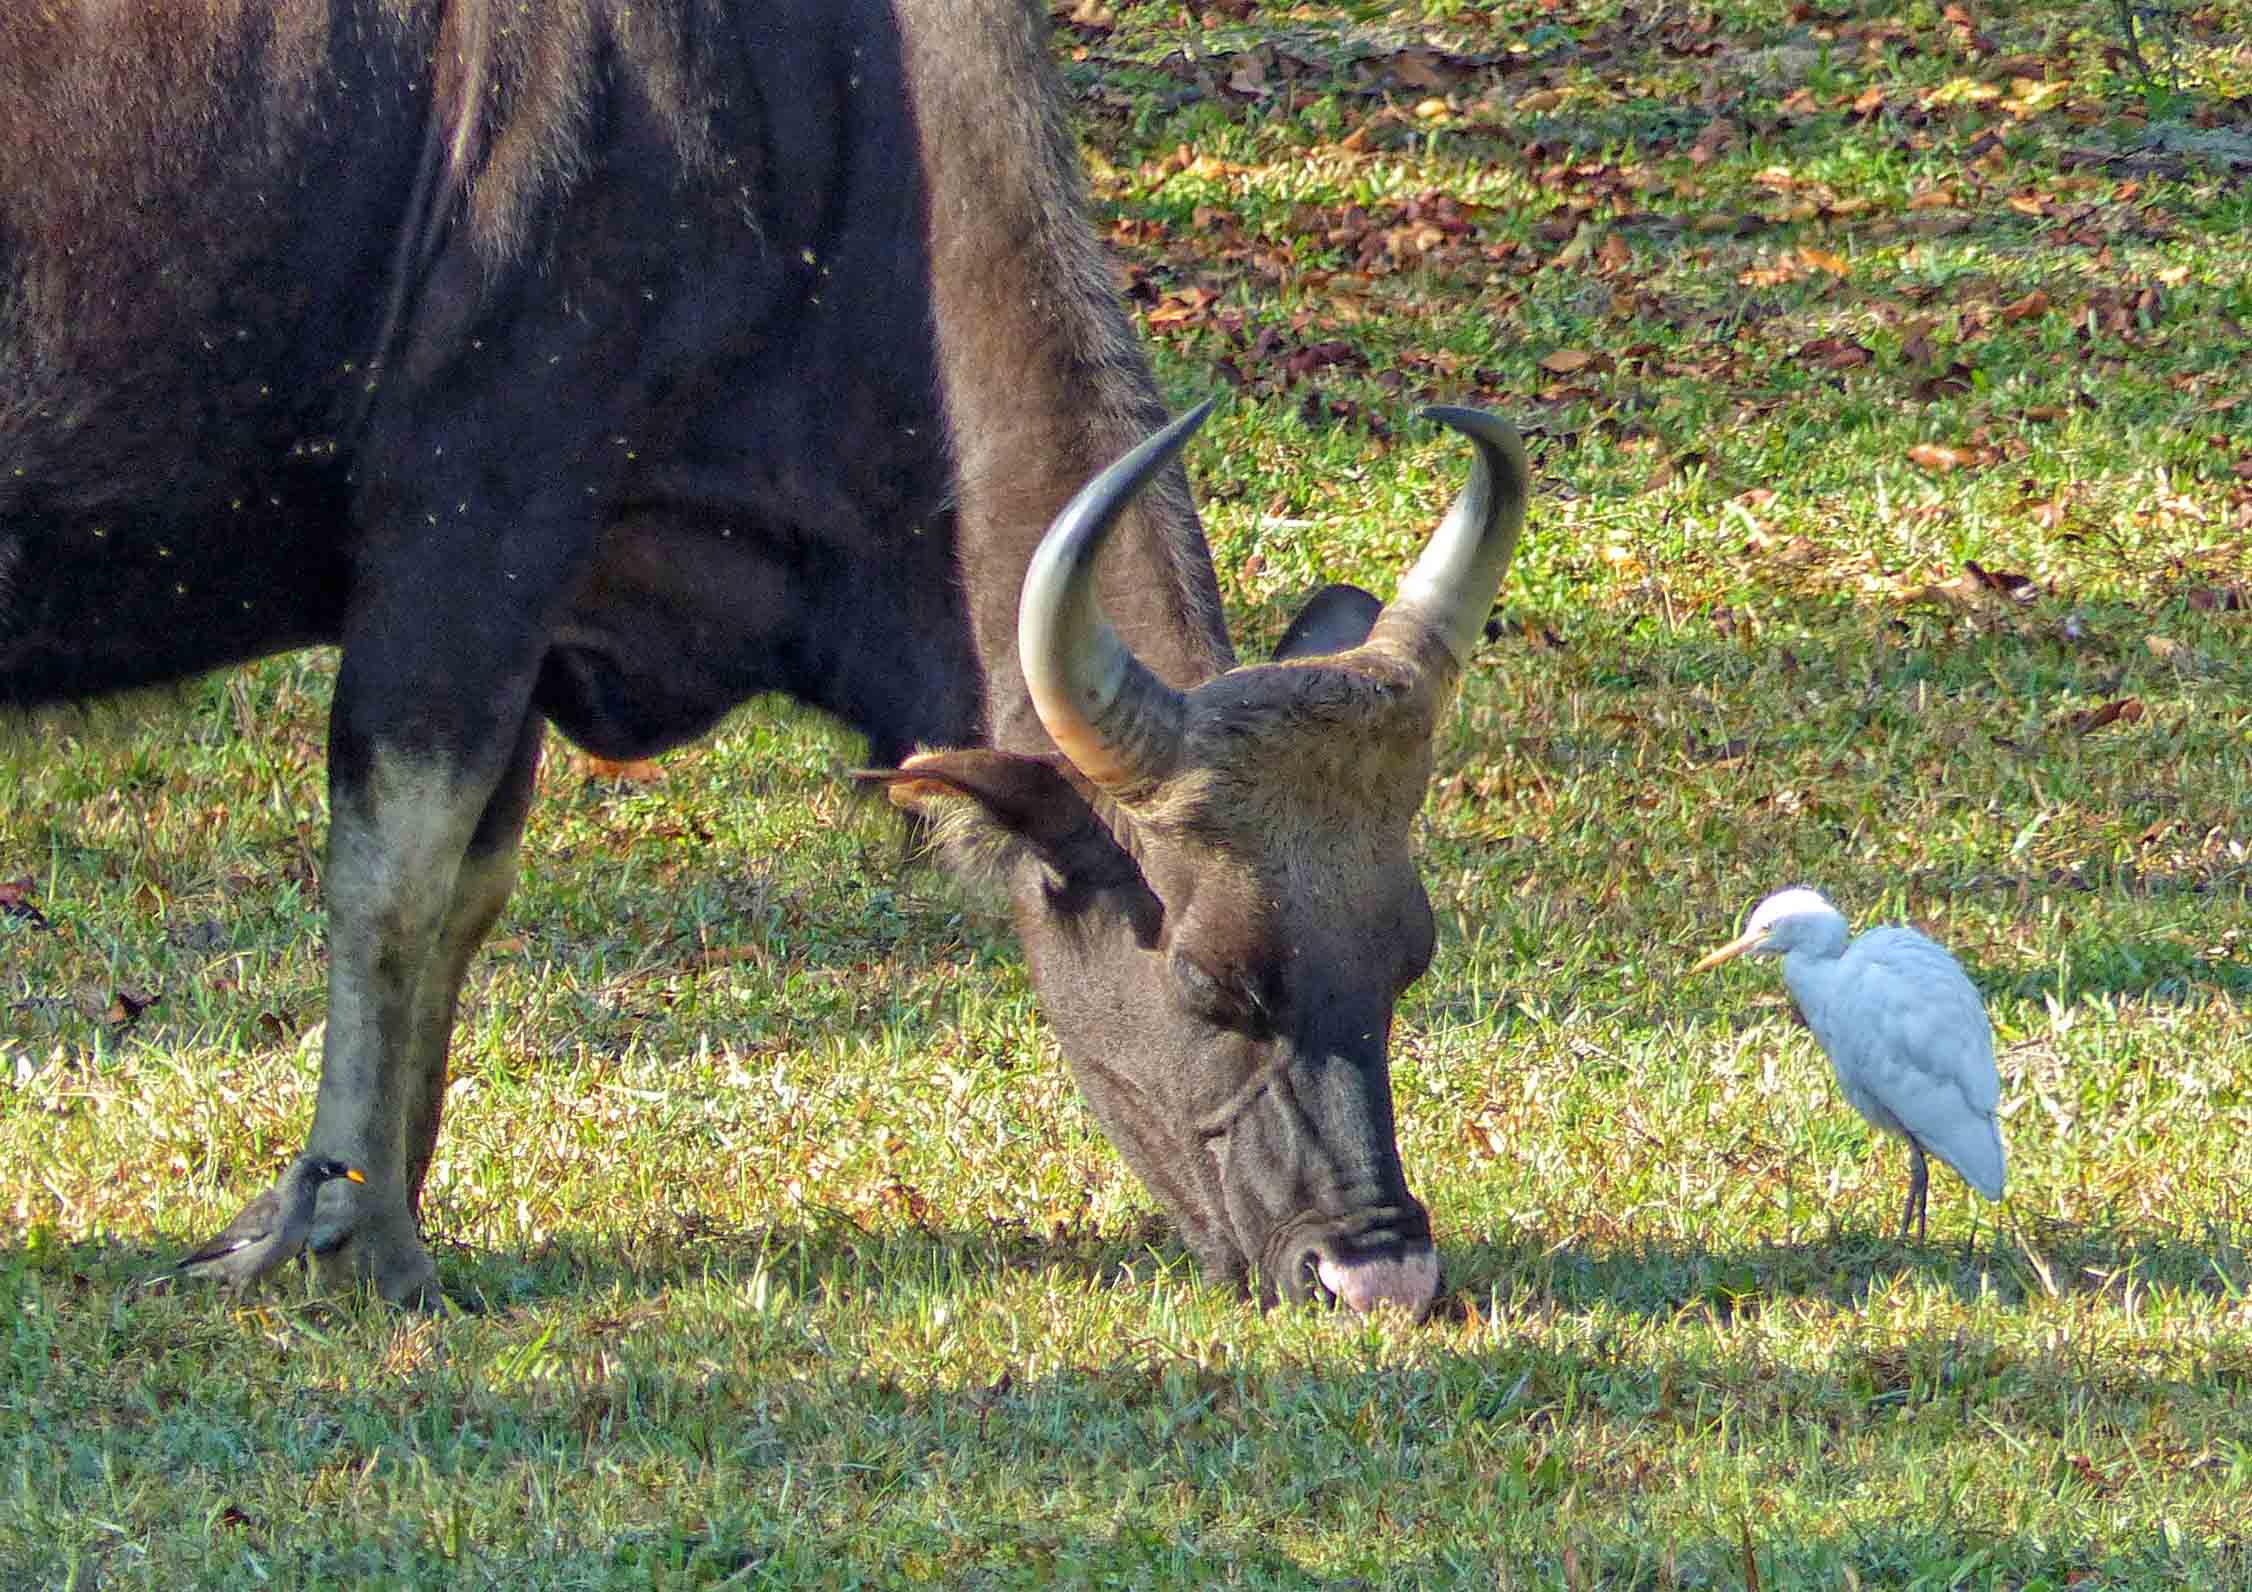 Horned bison grazing, watched by a white bird